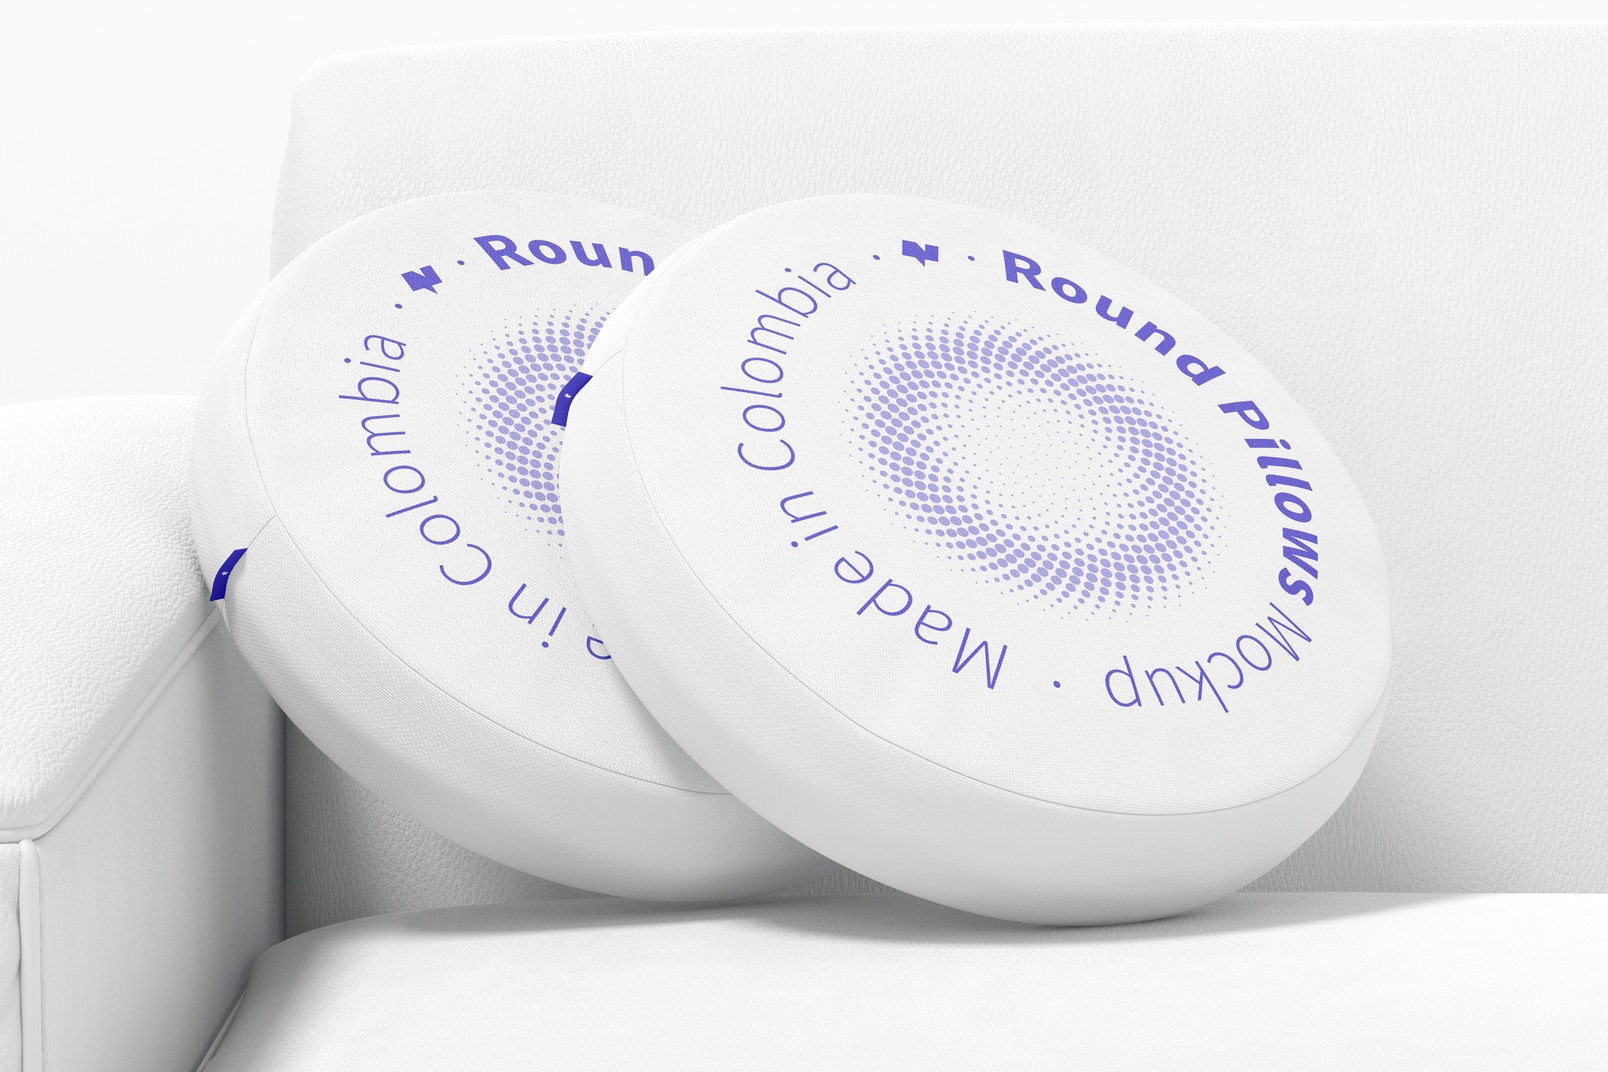 Round Pillows with Sofa Mockup